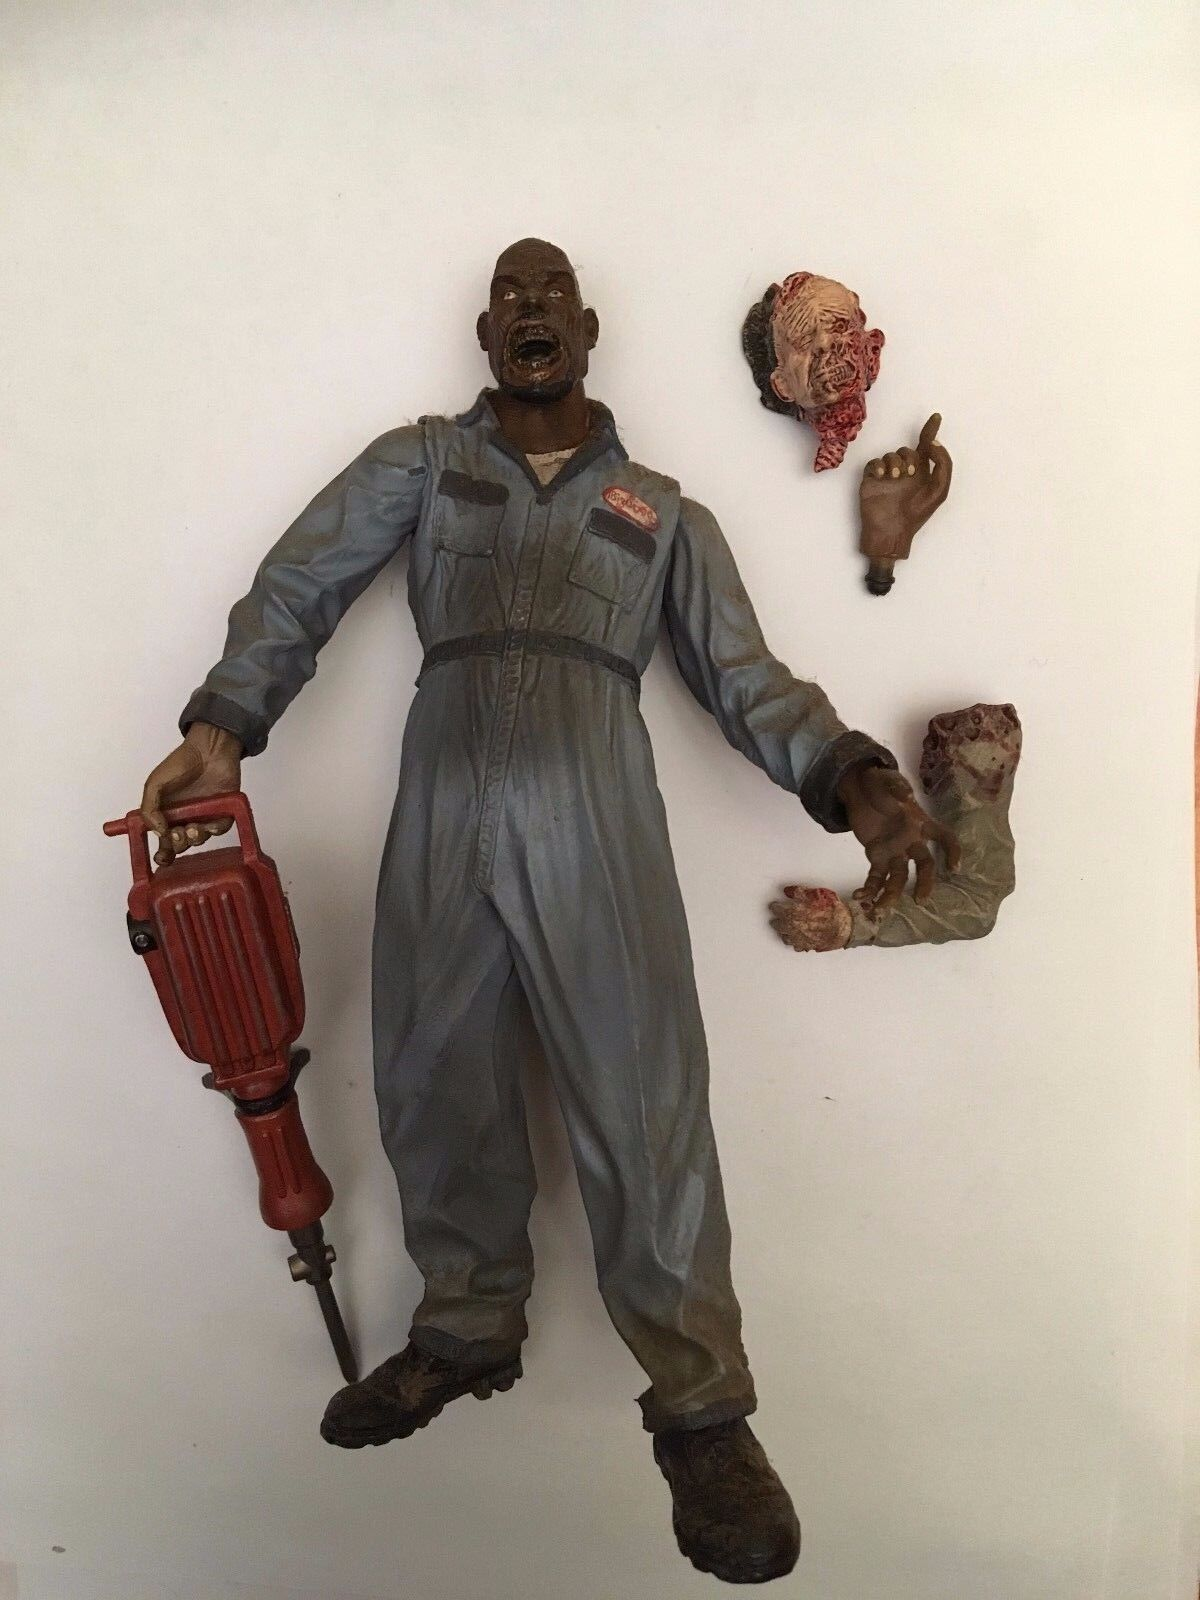 2006 SOTA TOYS 7  LAND OF THE DEAD - BIG DADDY HORROR FIGURE